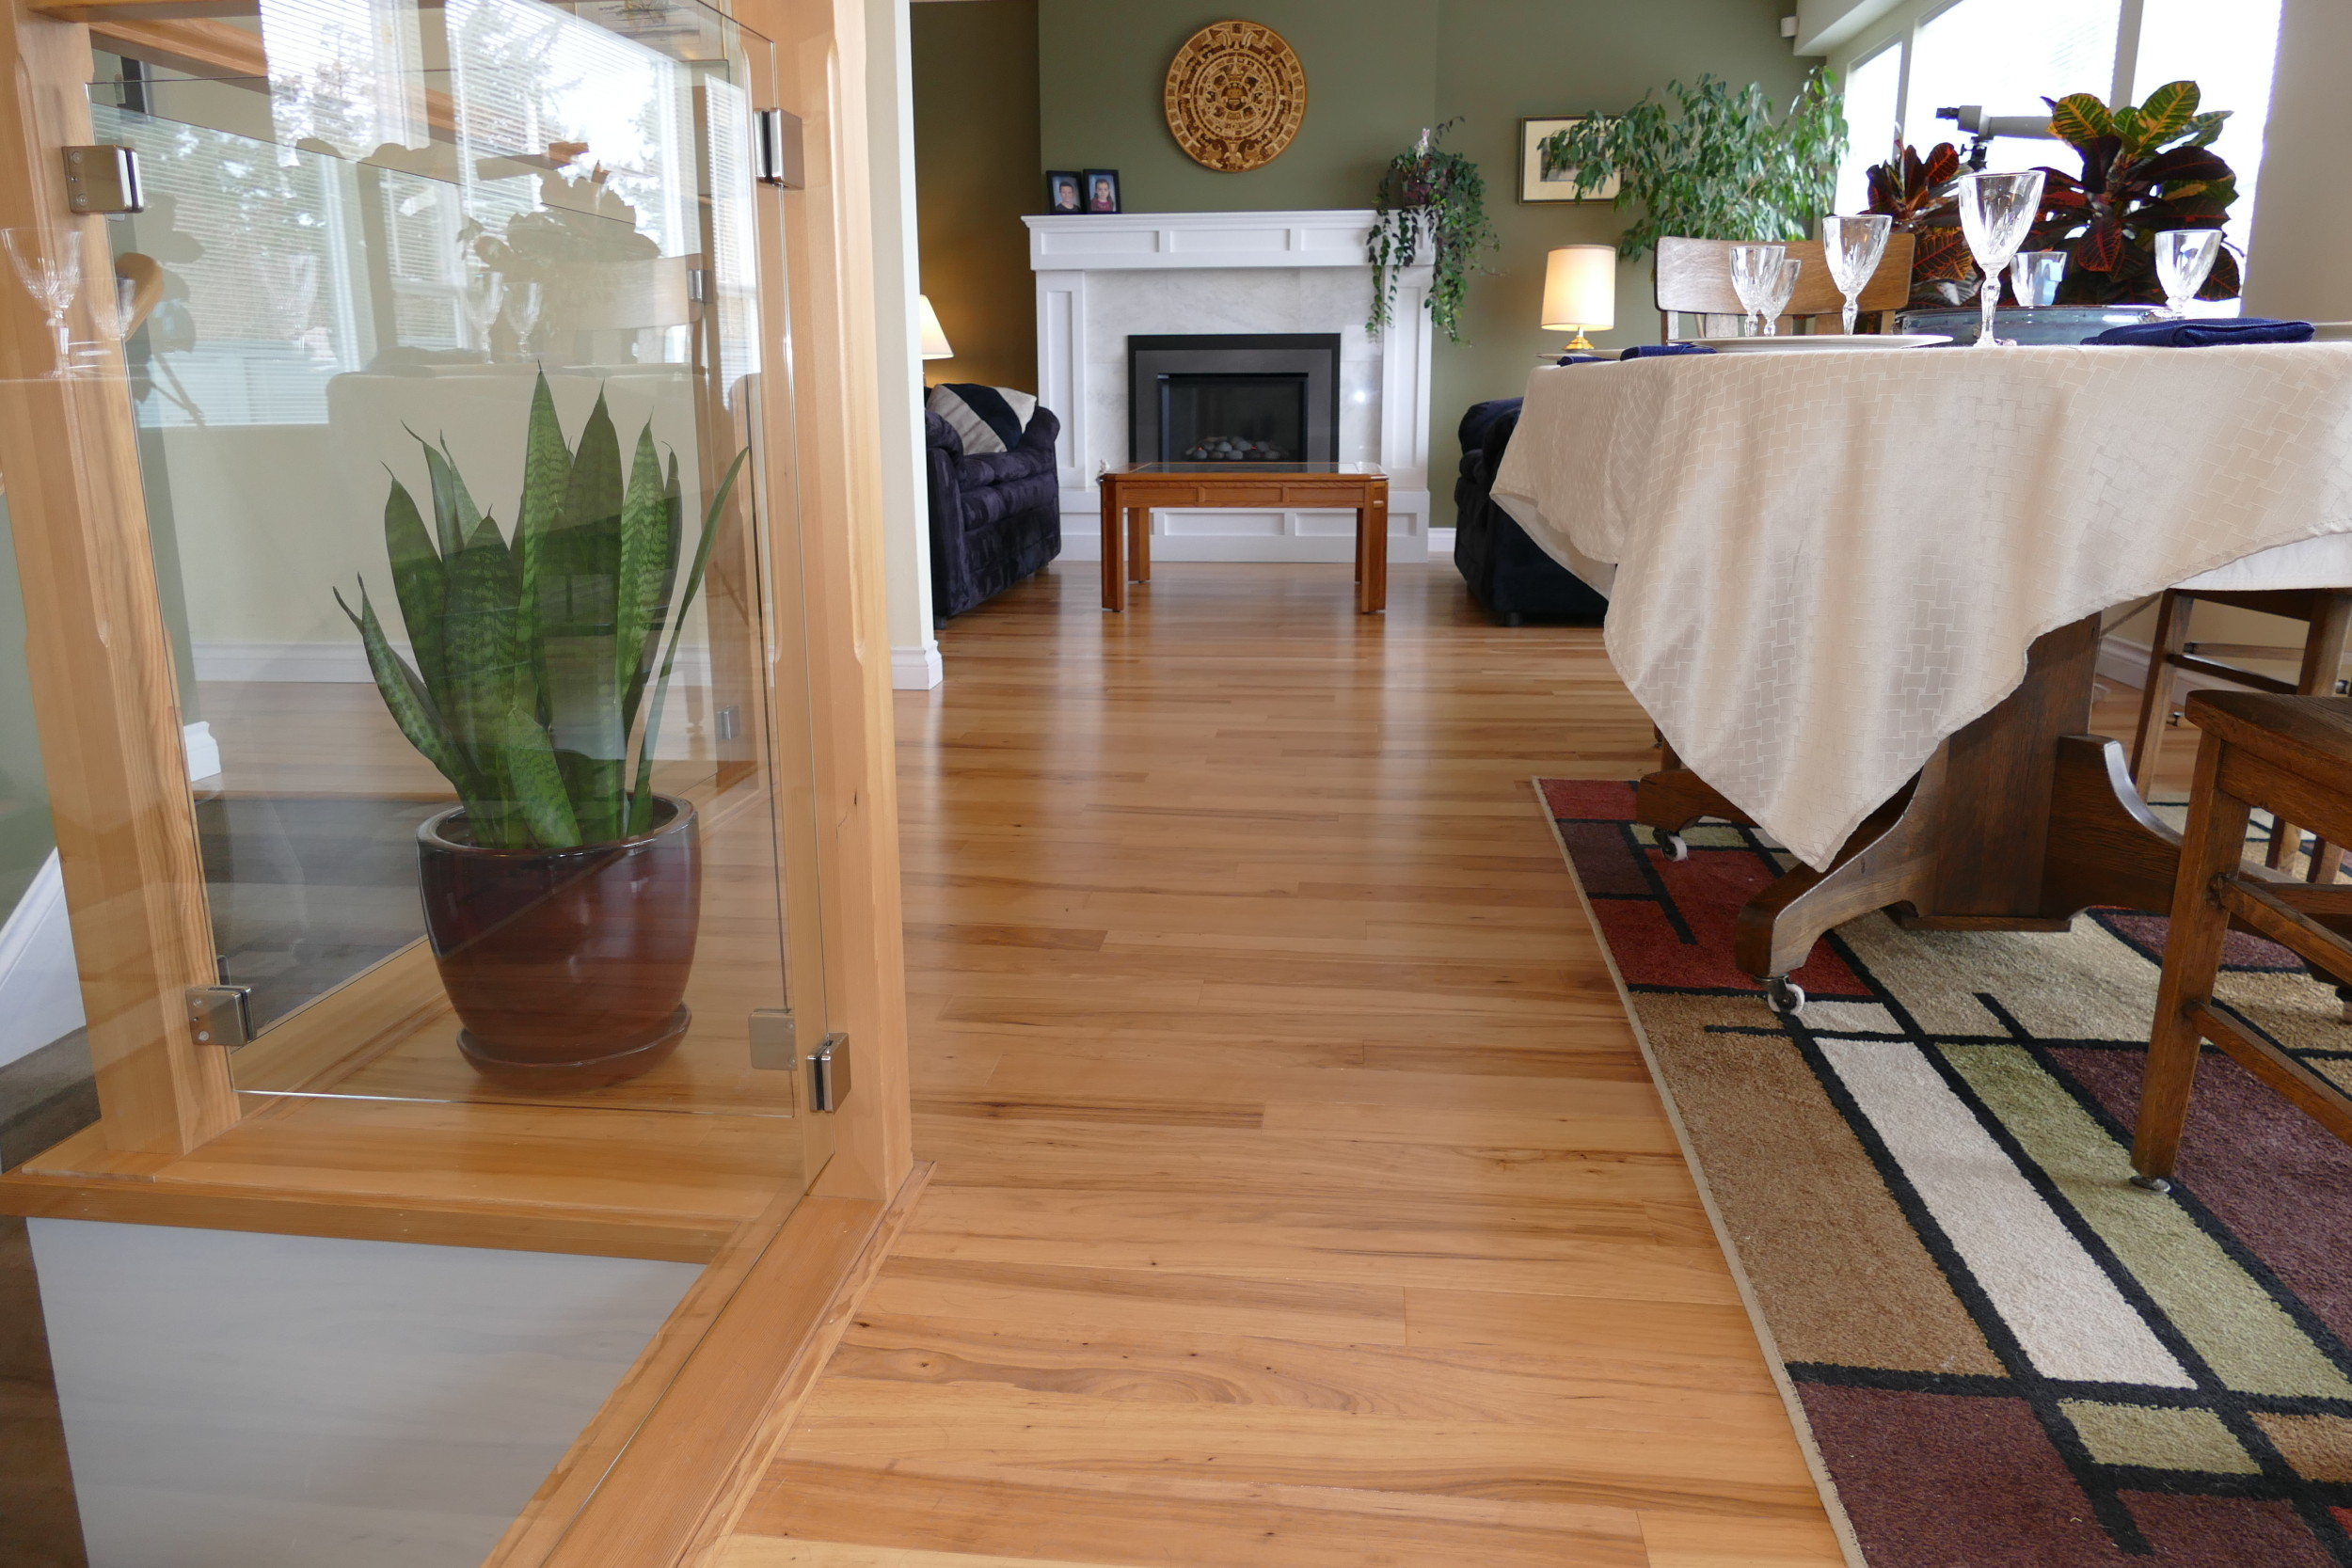 sustainable wood tesoro floor engineered hardwood floors in woods layers flooring wear